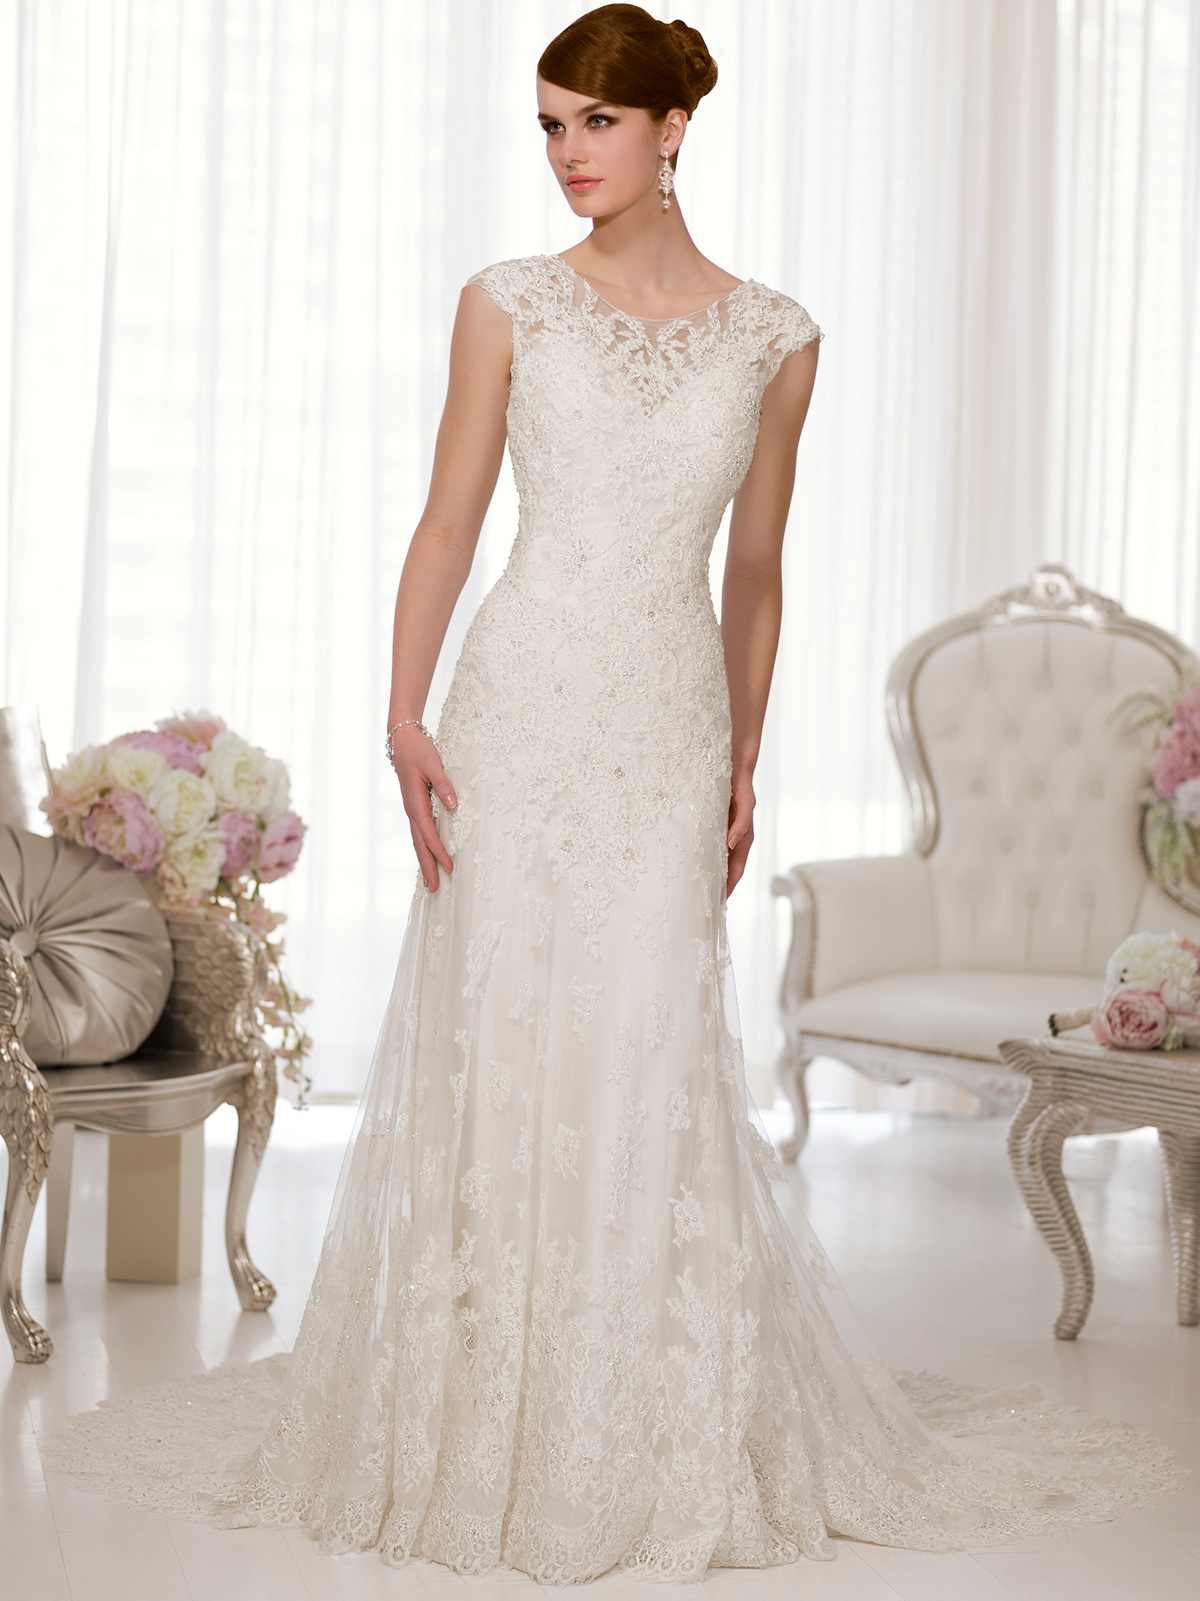 Essence of australia bridal prices other dresses dressesss for Essense of australia wedding dress cost